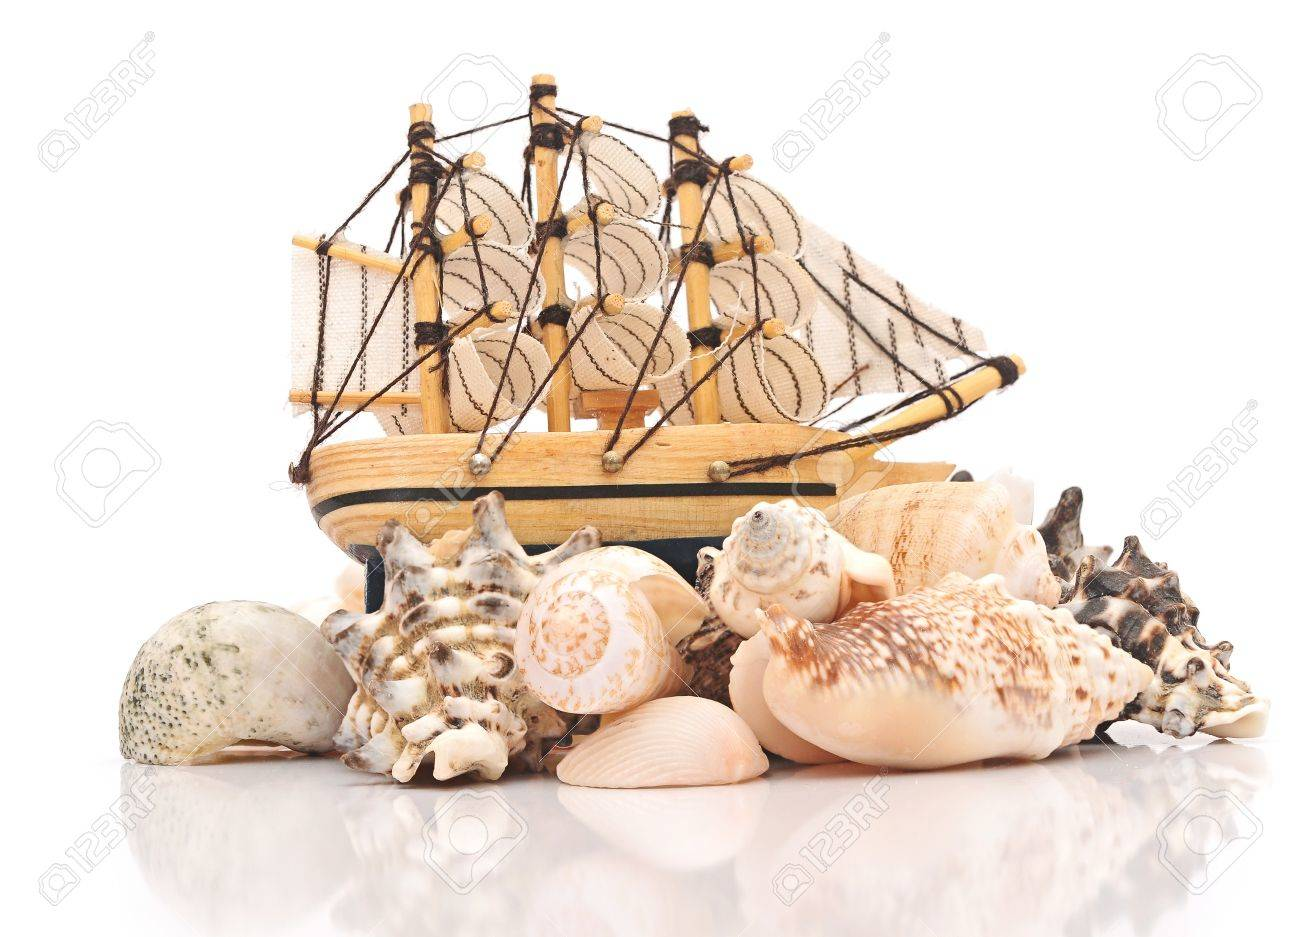 Sailing vessel and sea shells on white background Stock Photo - 16945521